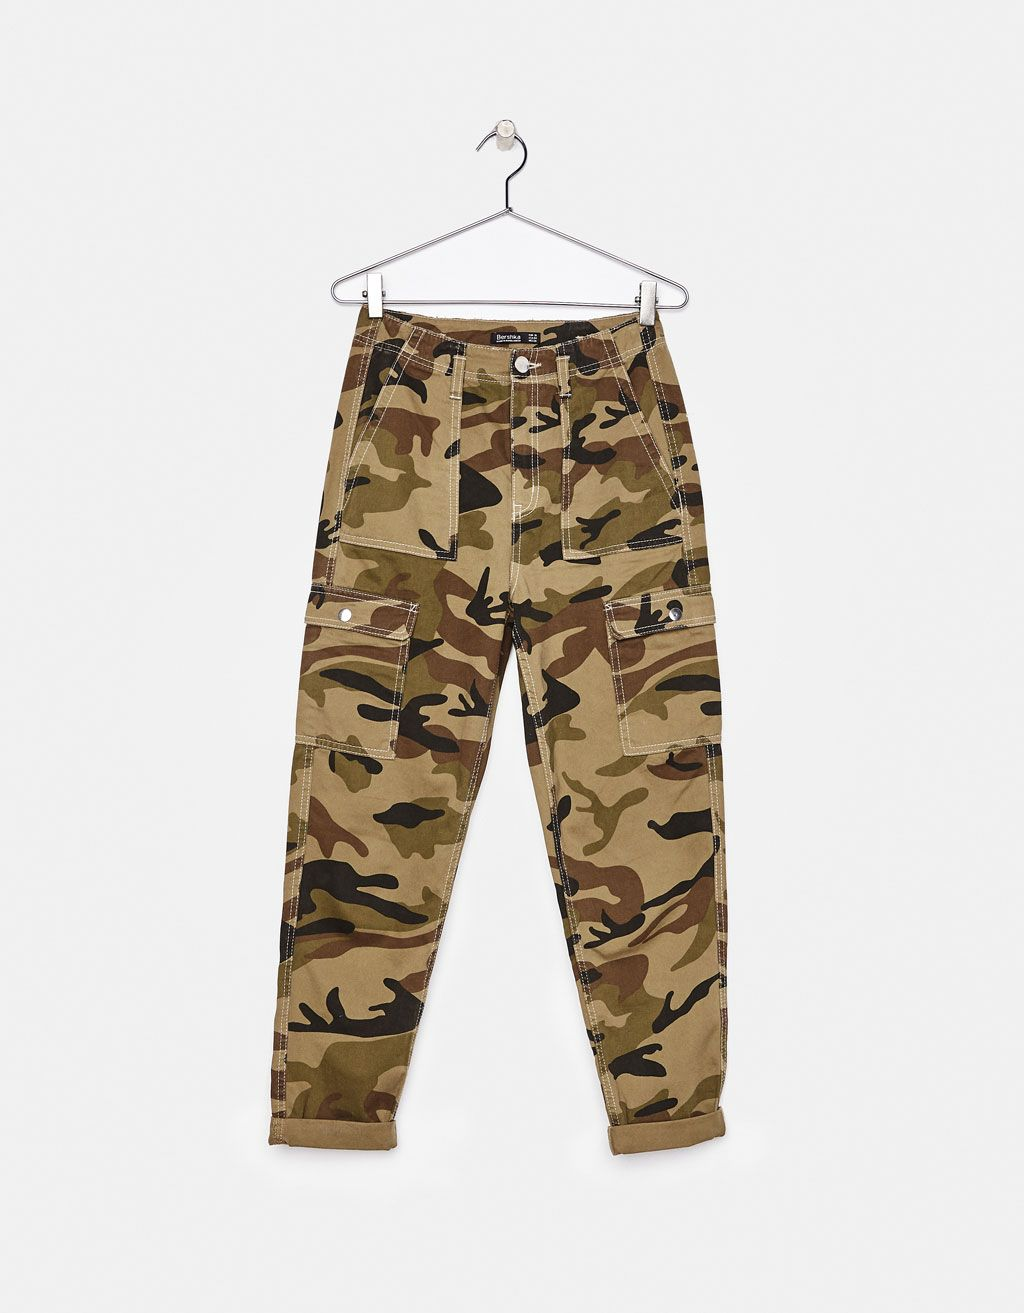 b7a03dc4348a Camouflage cargo pants